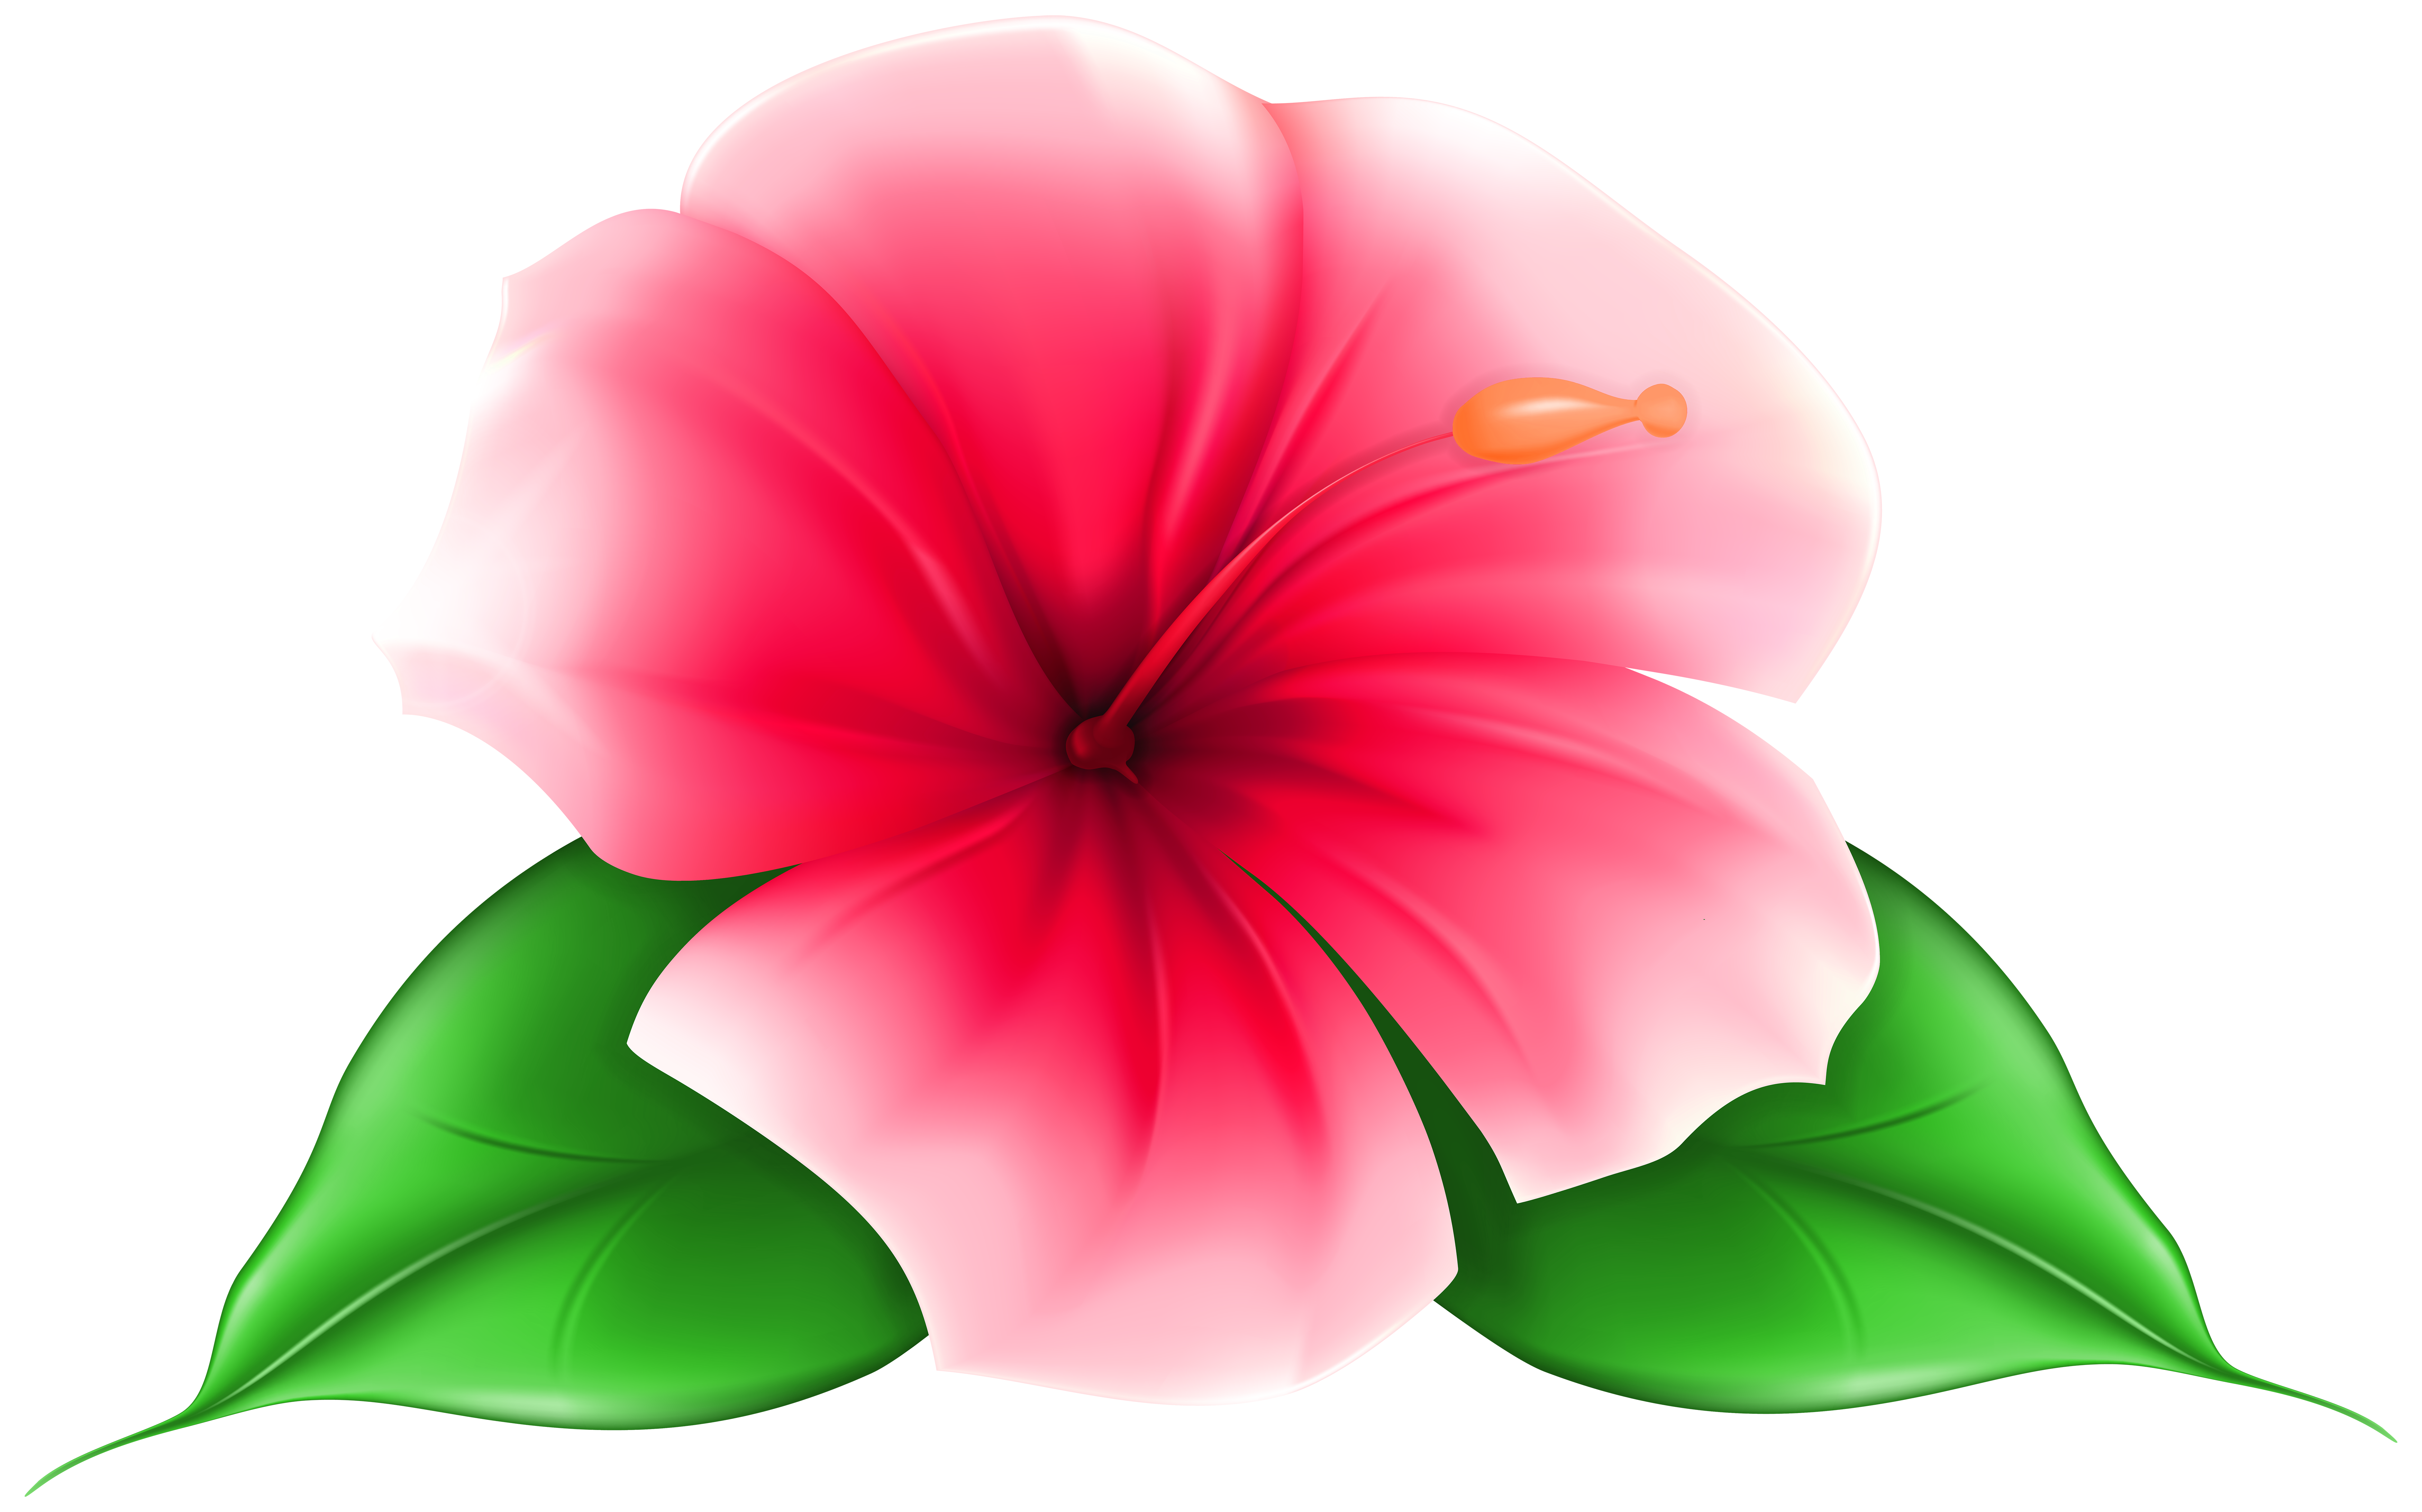 Flower clip art png. Exotic image gallery yopriceville